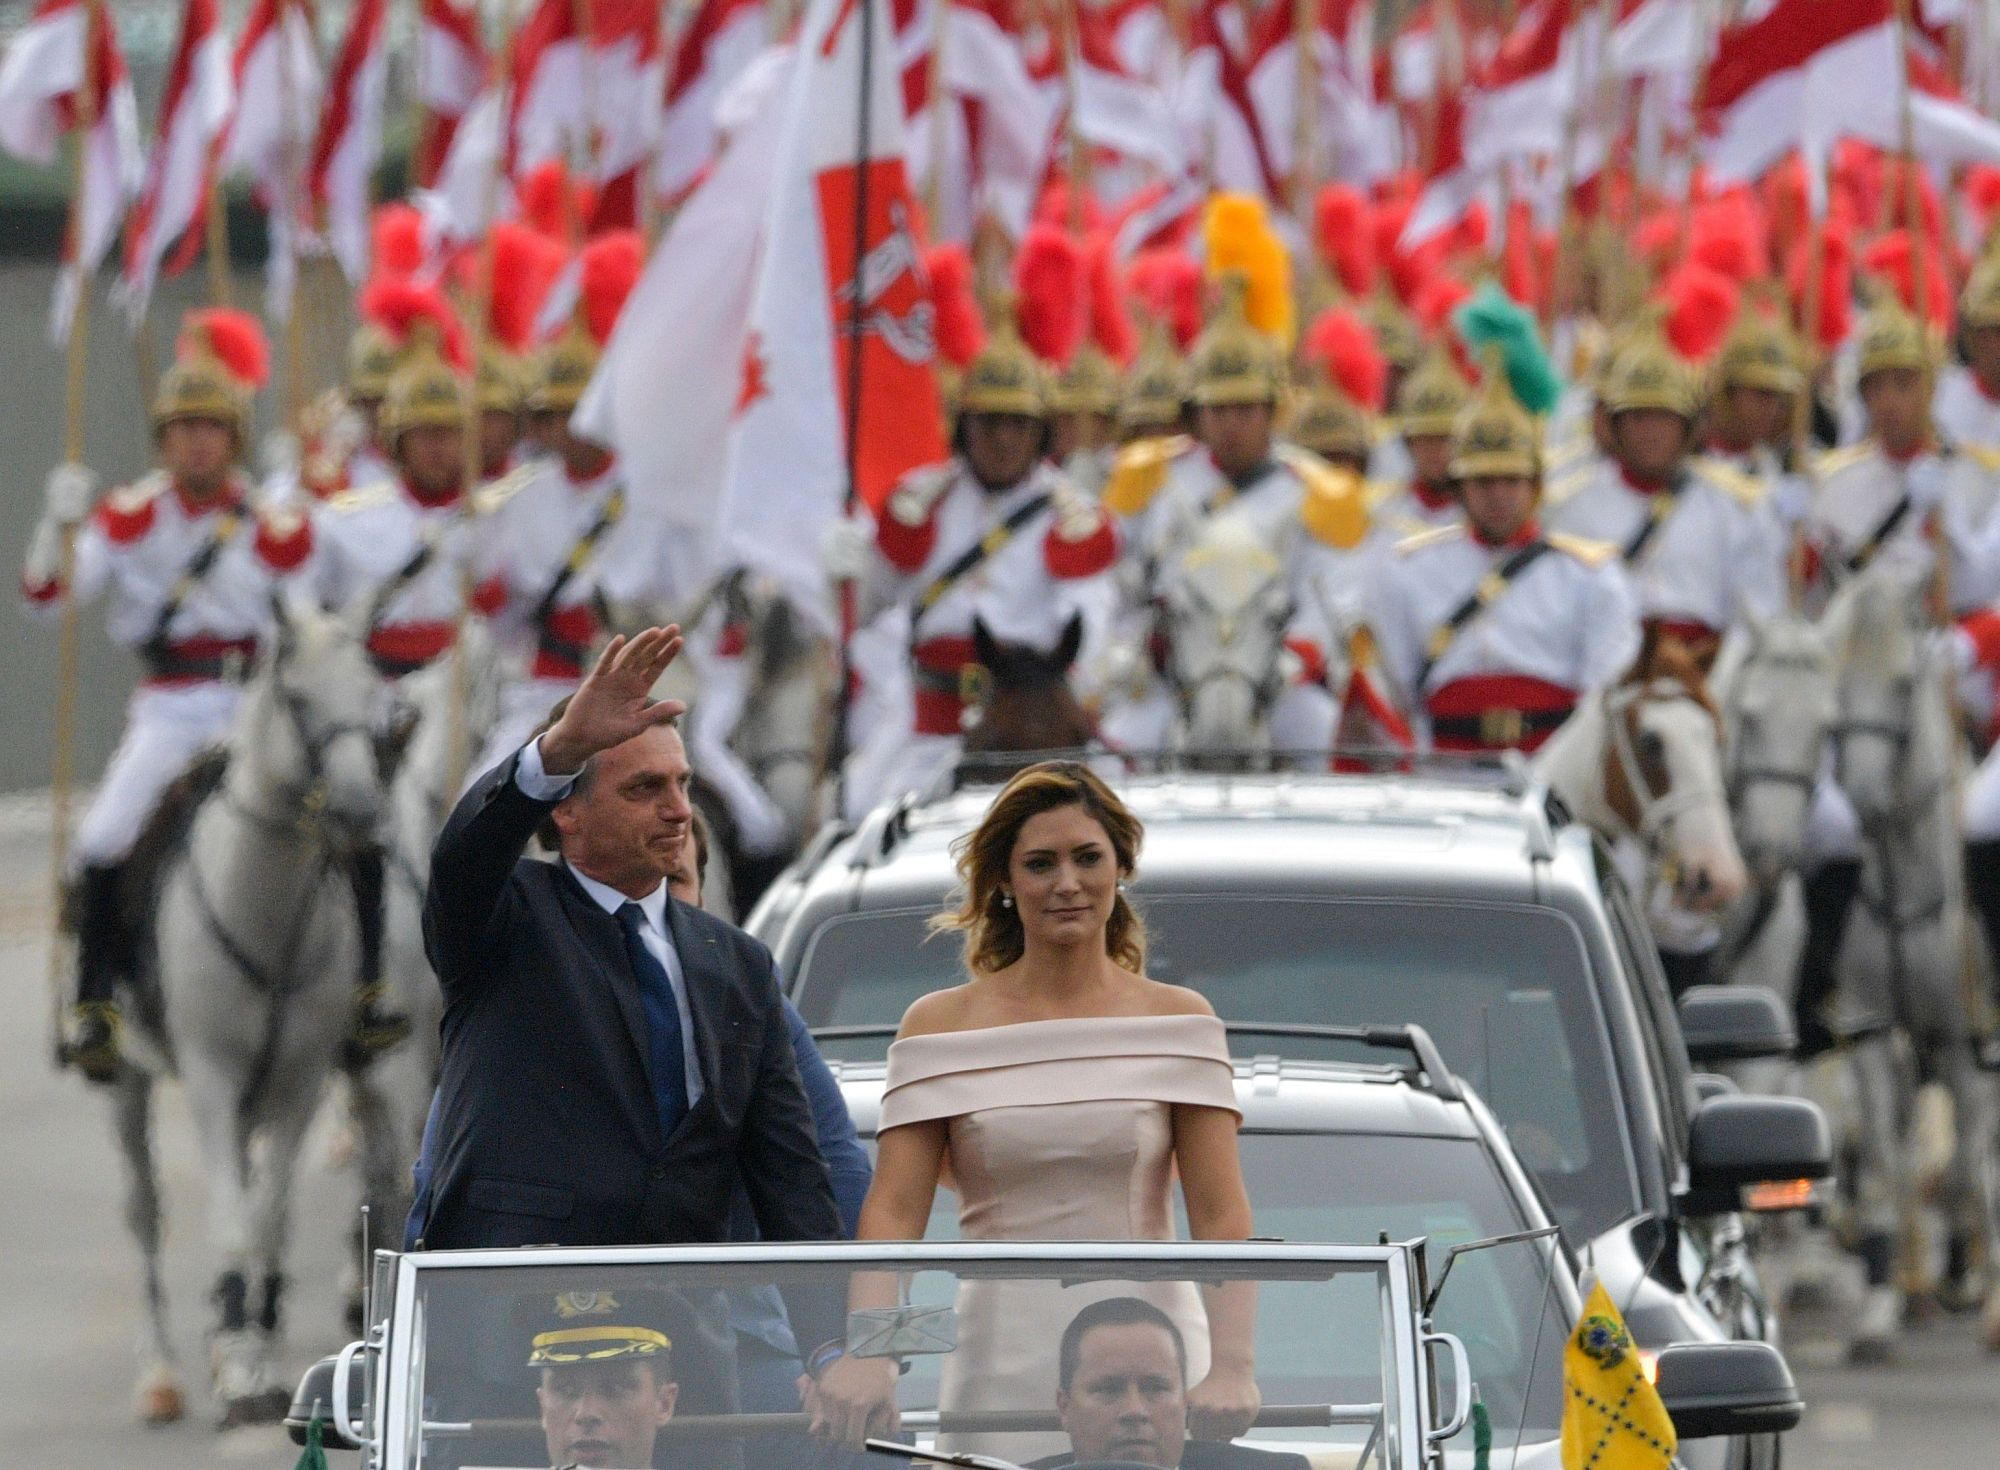 Brazilian President-elect Jair Bolsonaro waves at the crowd next to his wife, Michelle Bolsonaro, as the presidential convoy heads to the National Congress for his swearing-in ceremony, in Brasilia Tuesday. Bolsonaro takes office with promises to radically change the path taken by Latin America's biggest country by trashing decades of center-left policies. | AFP-JIJI